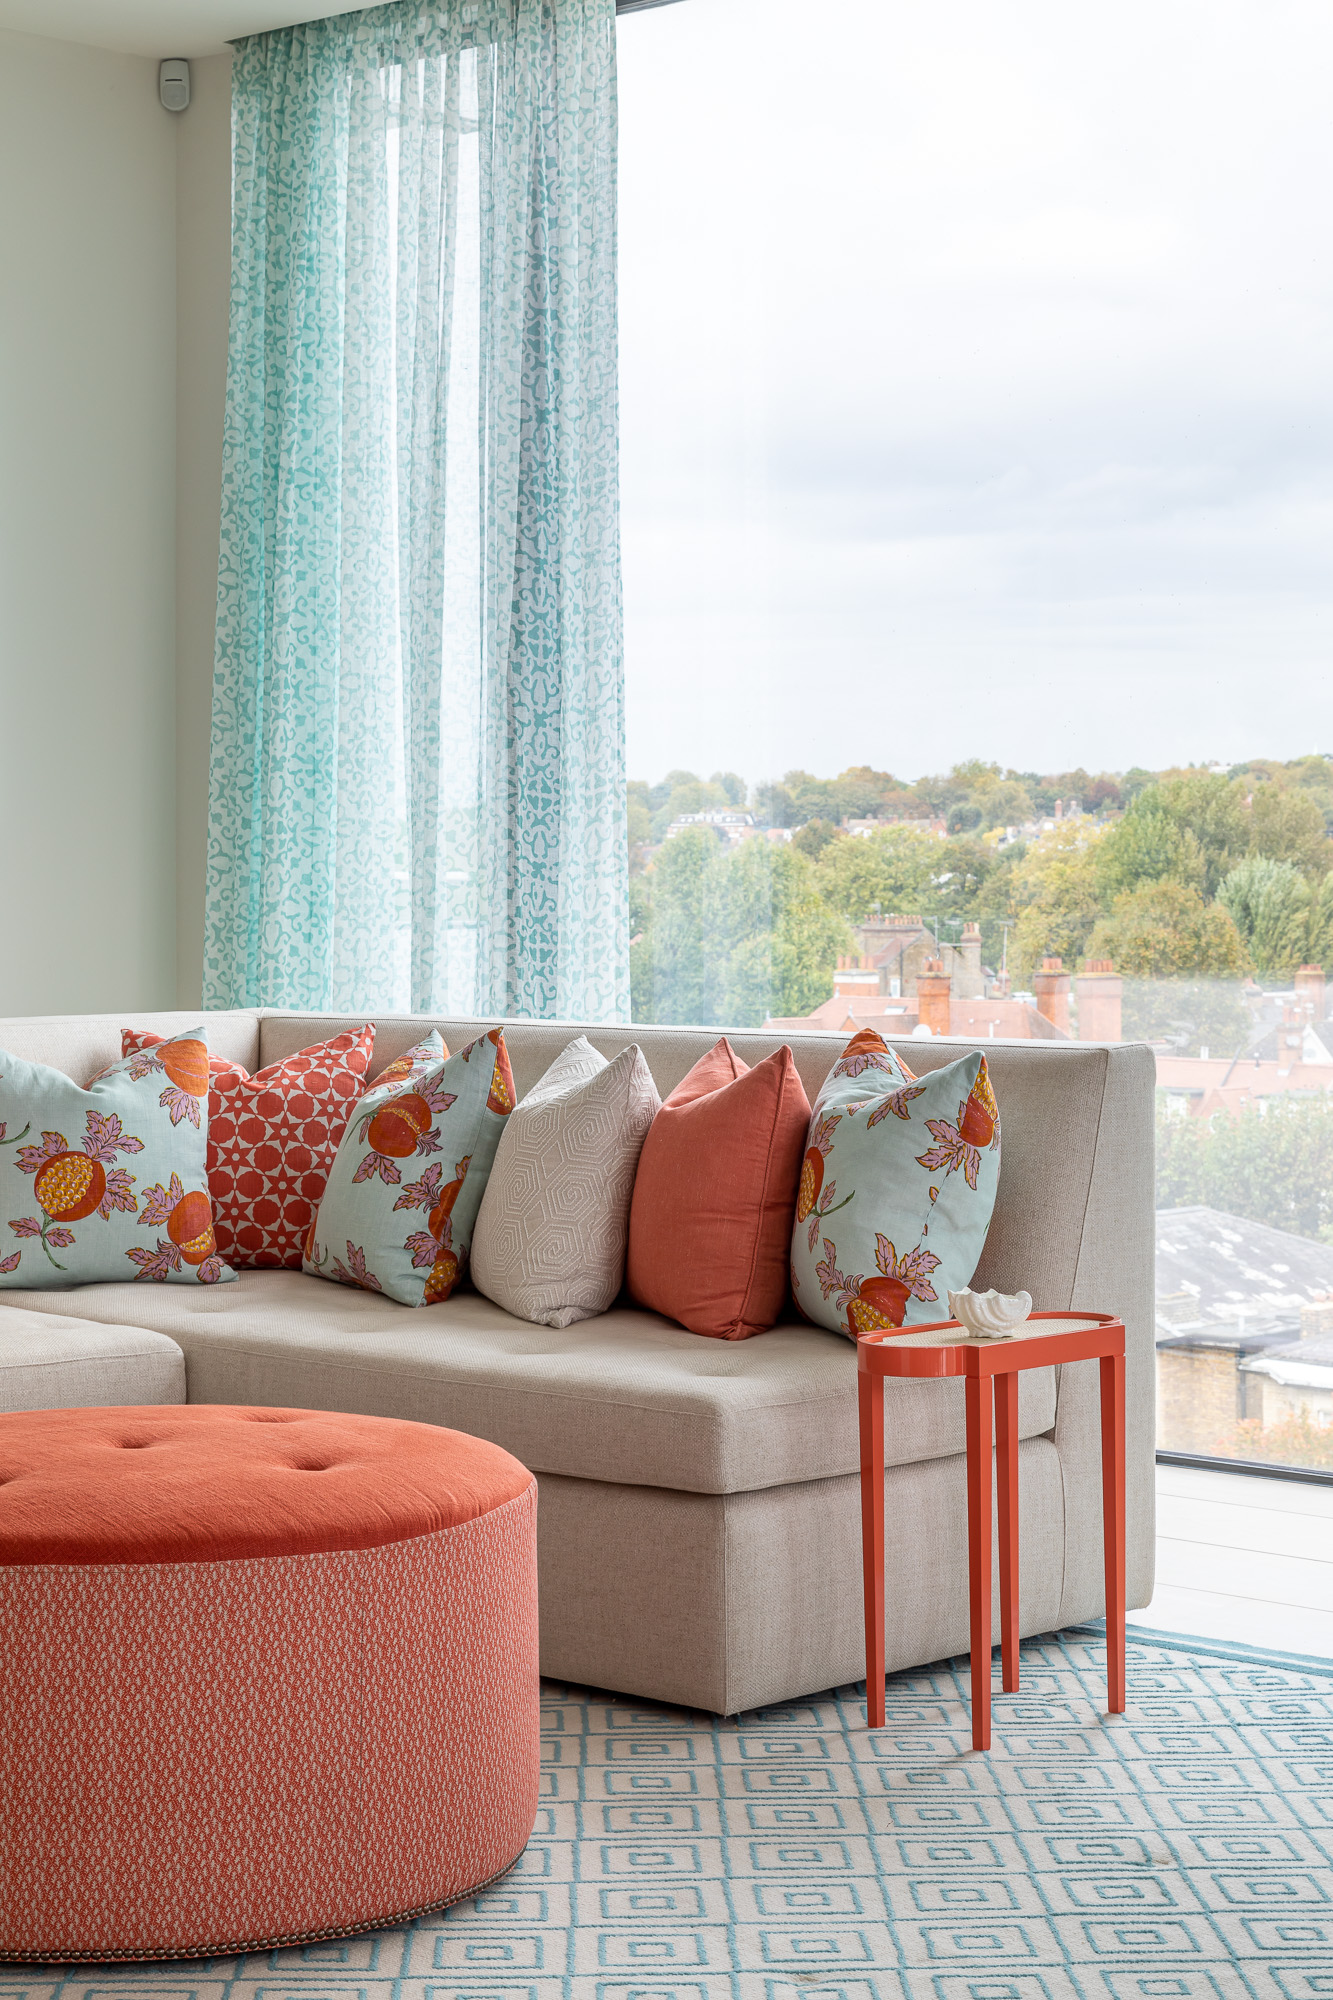 jonathan bond, interior photographer, sitting room sofa & scatter cushions window view, belsize park, london